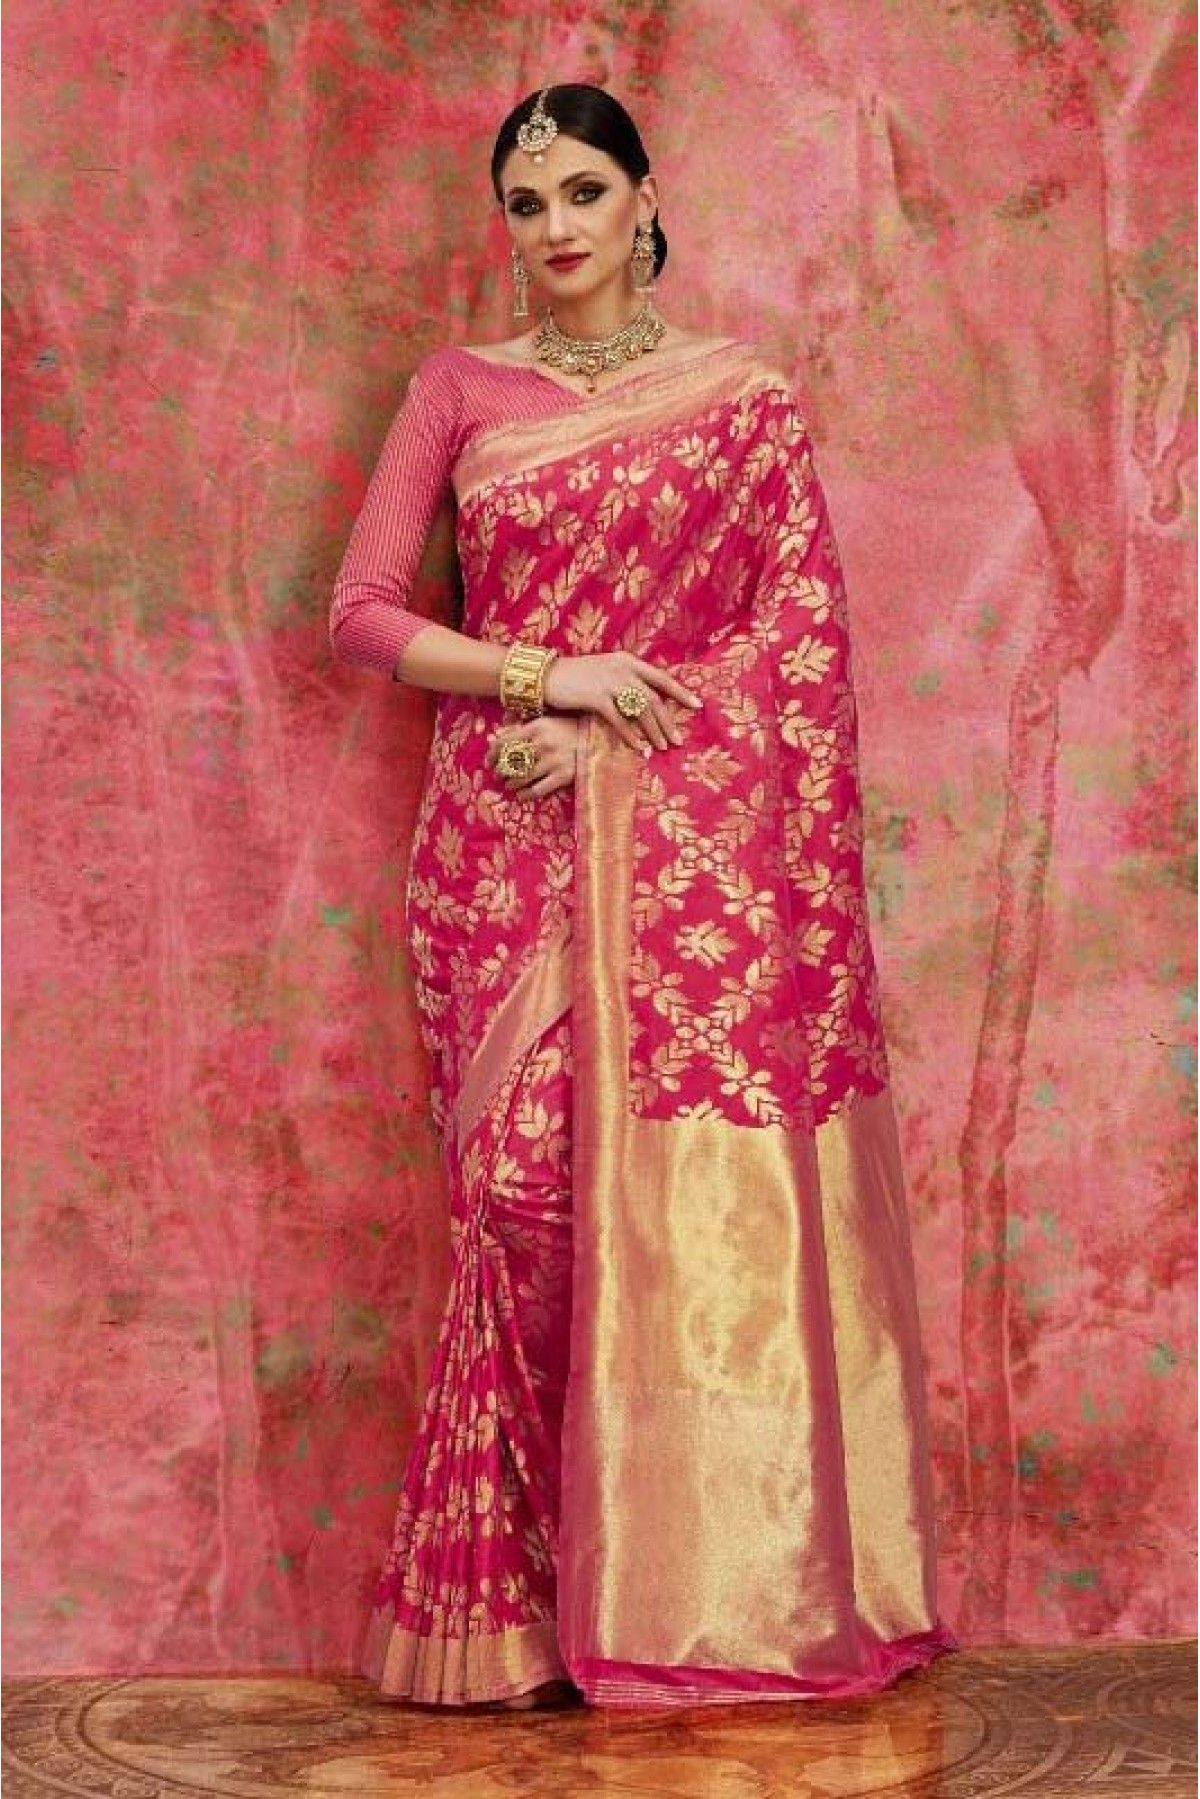 f0ced5c79a The Stylish And Elegant Saree In Pink Woven Colour Looks Stunning And  Gorgeous With Trendy And Fashionable Woven . The Banarasi,Silk Party Wear  Saree Looks ...